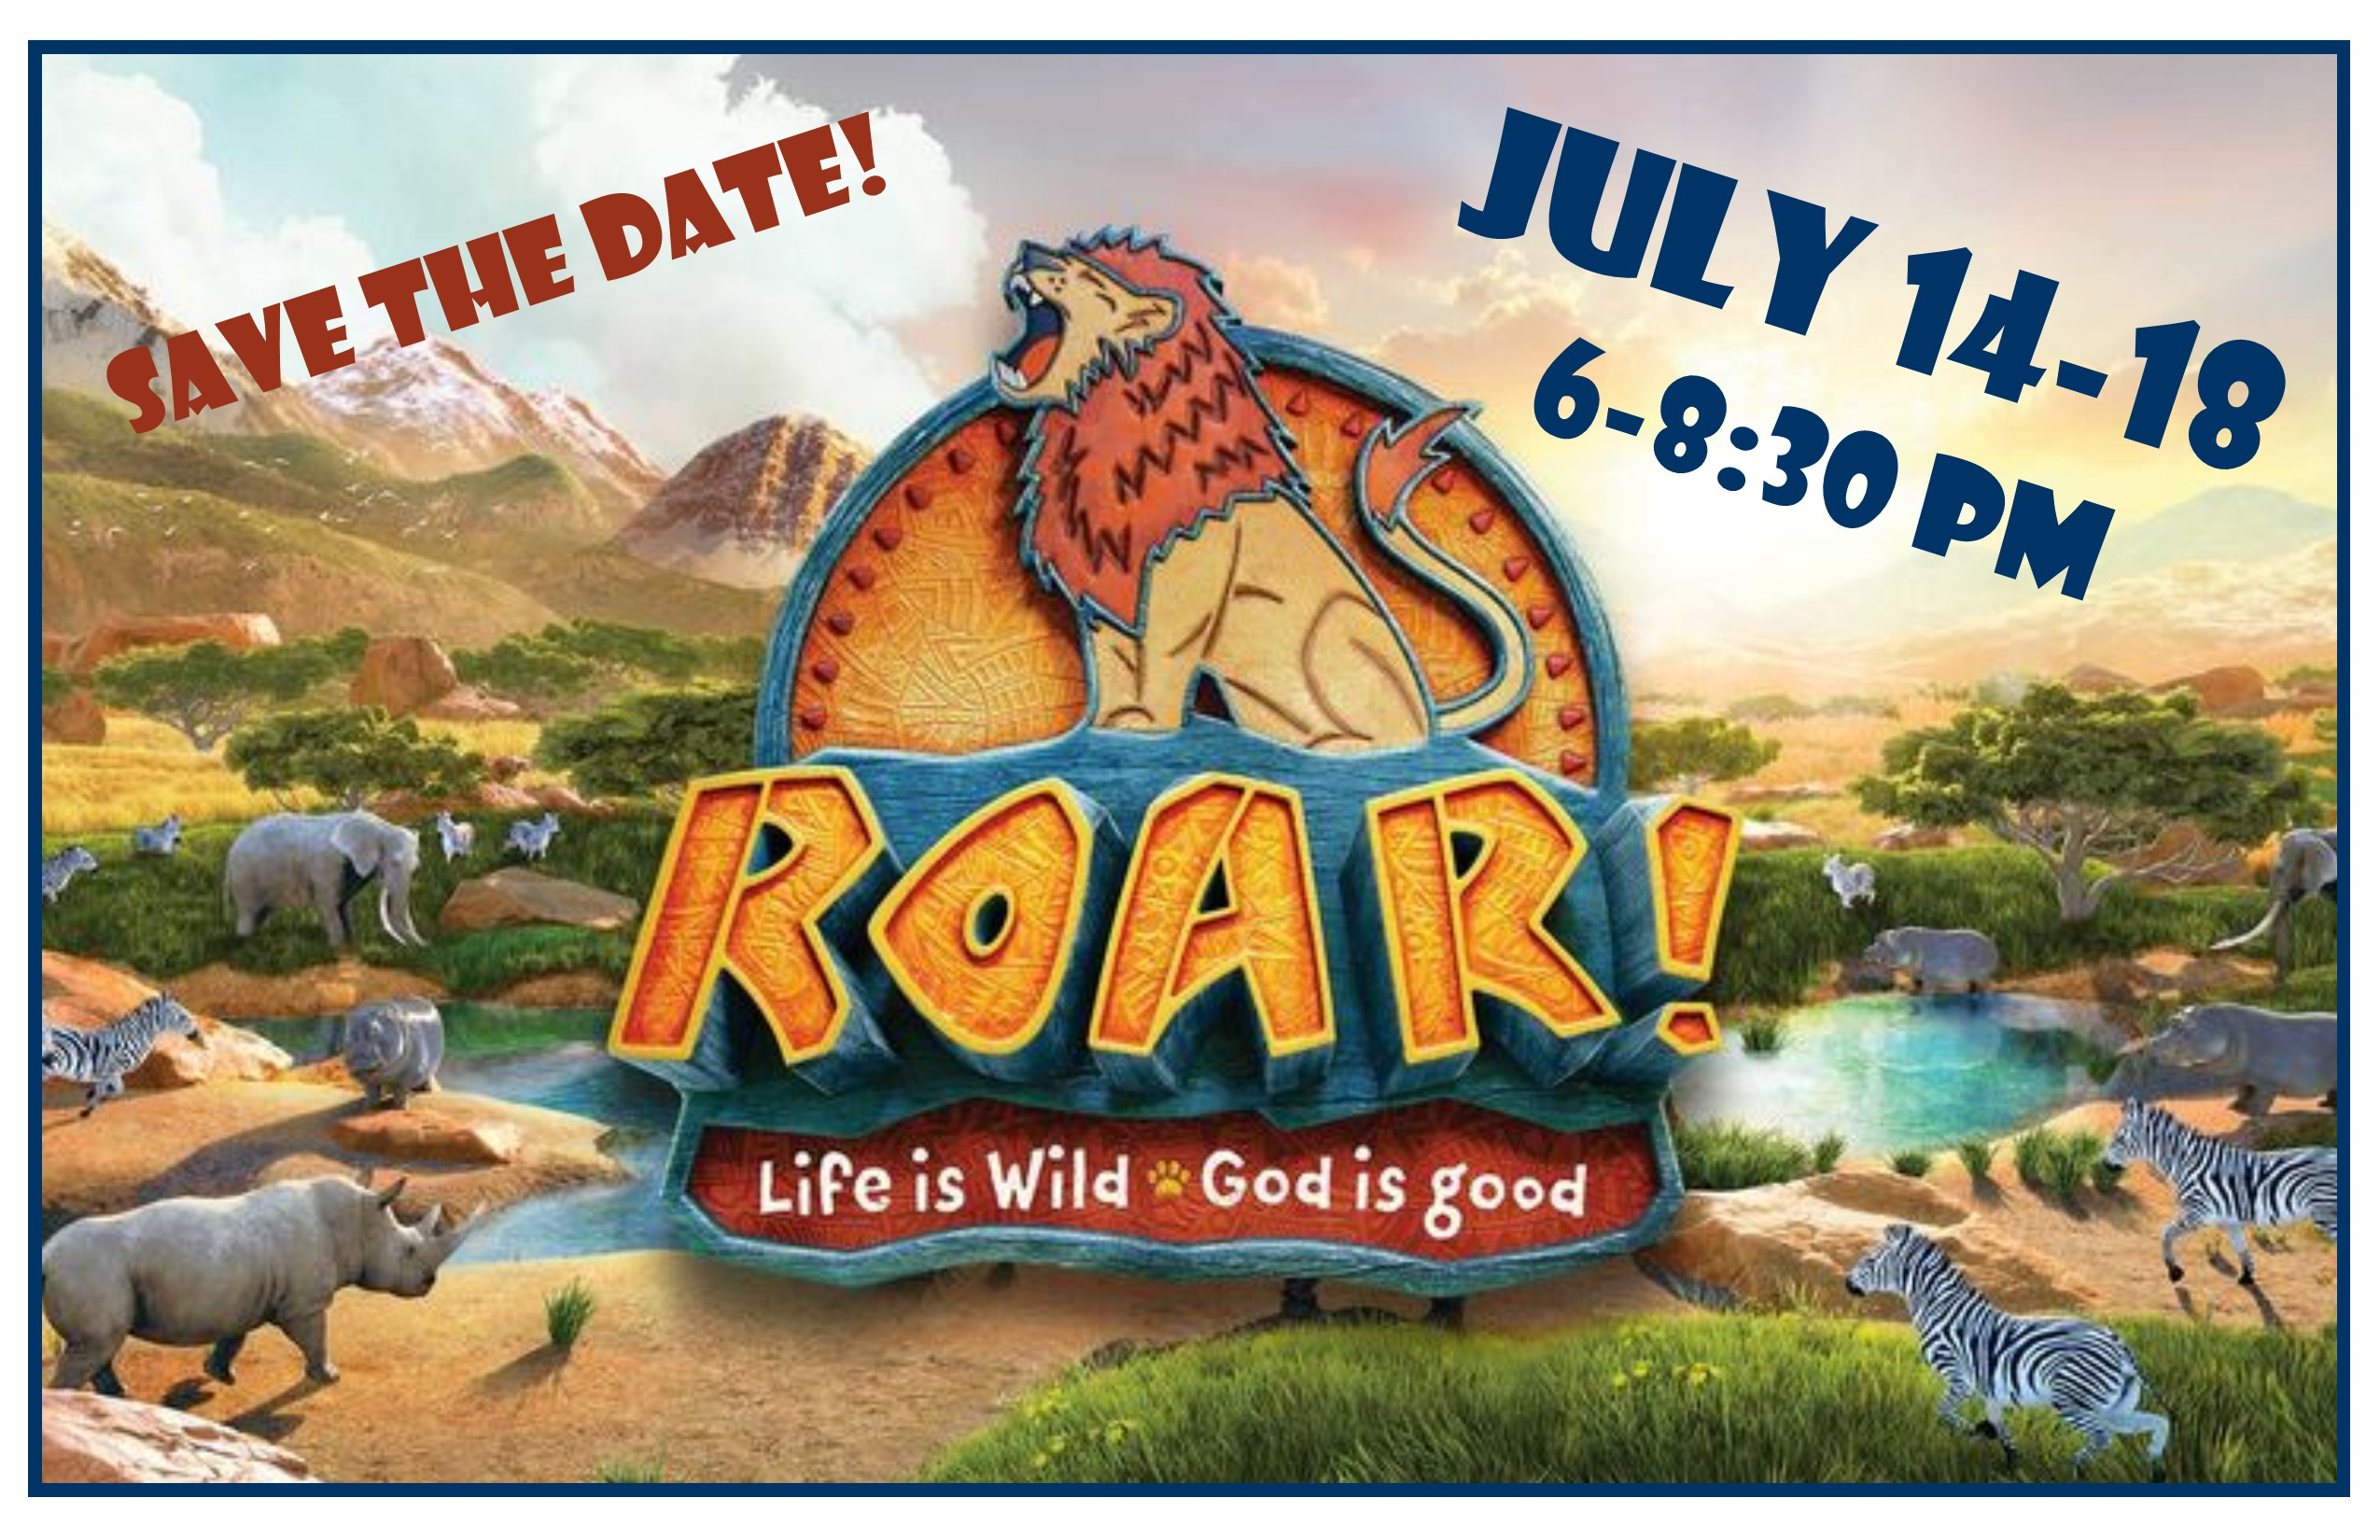 07 14 18 2019 Roar VBS Save Date Poster